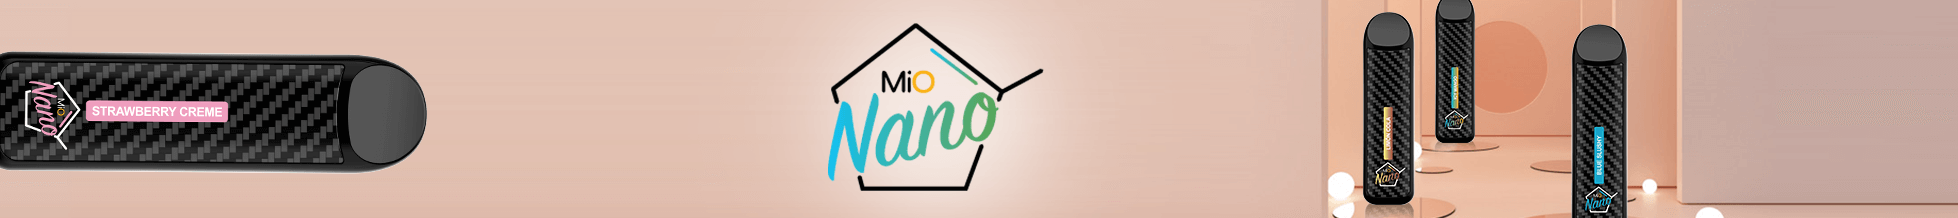 mio-nano-category-banner.png